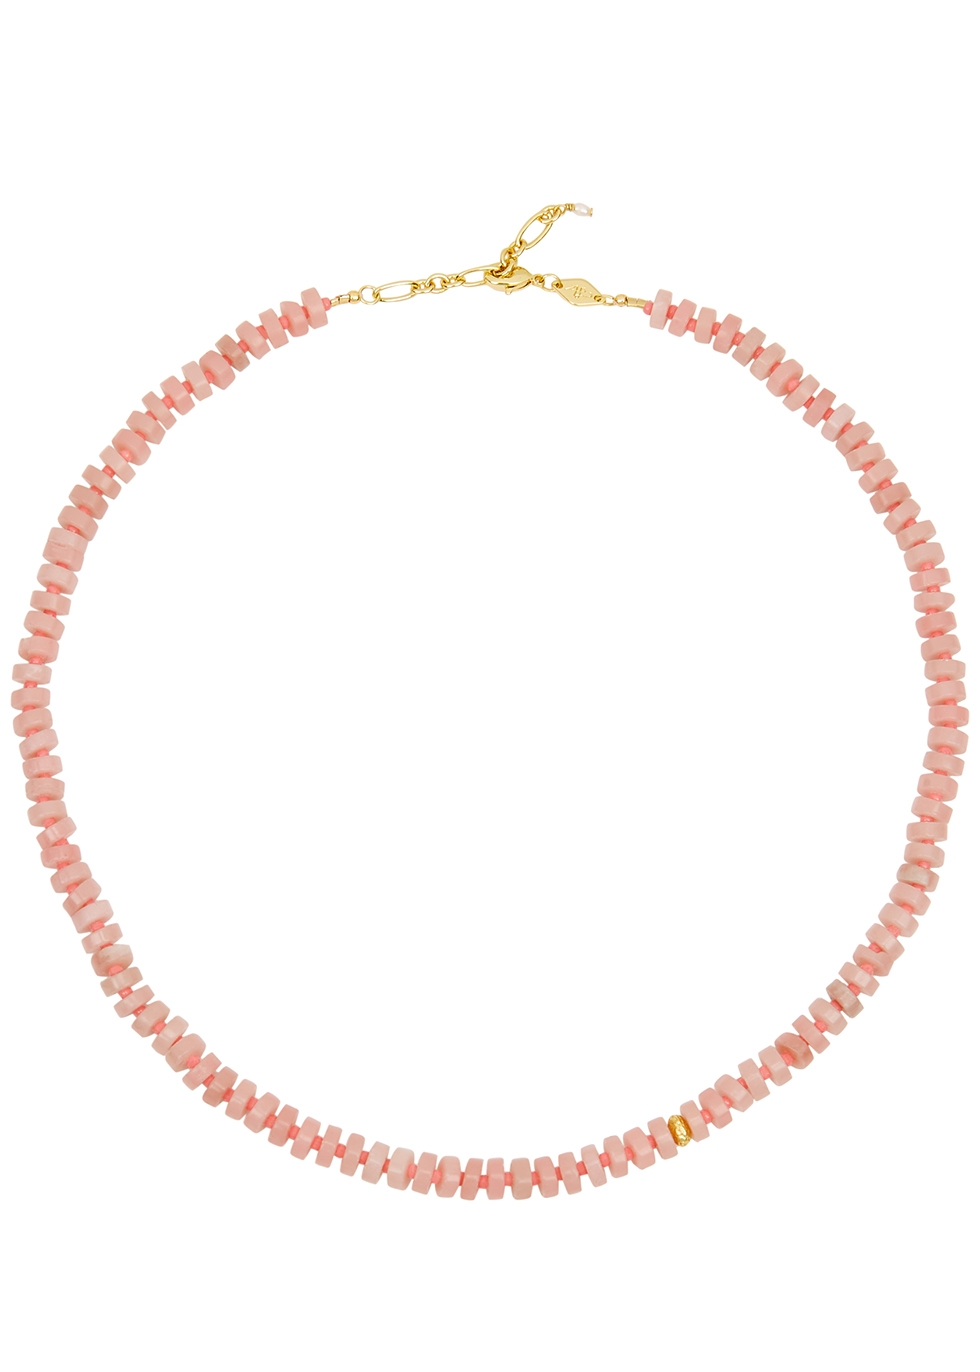 The Big Pink beaded necklace